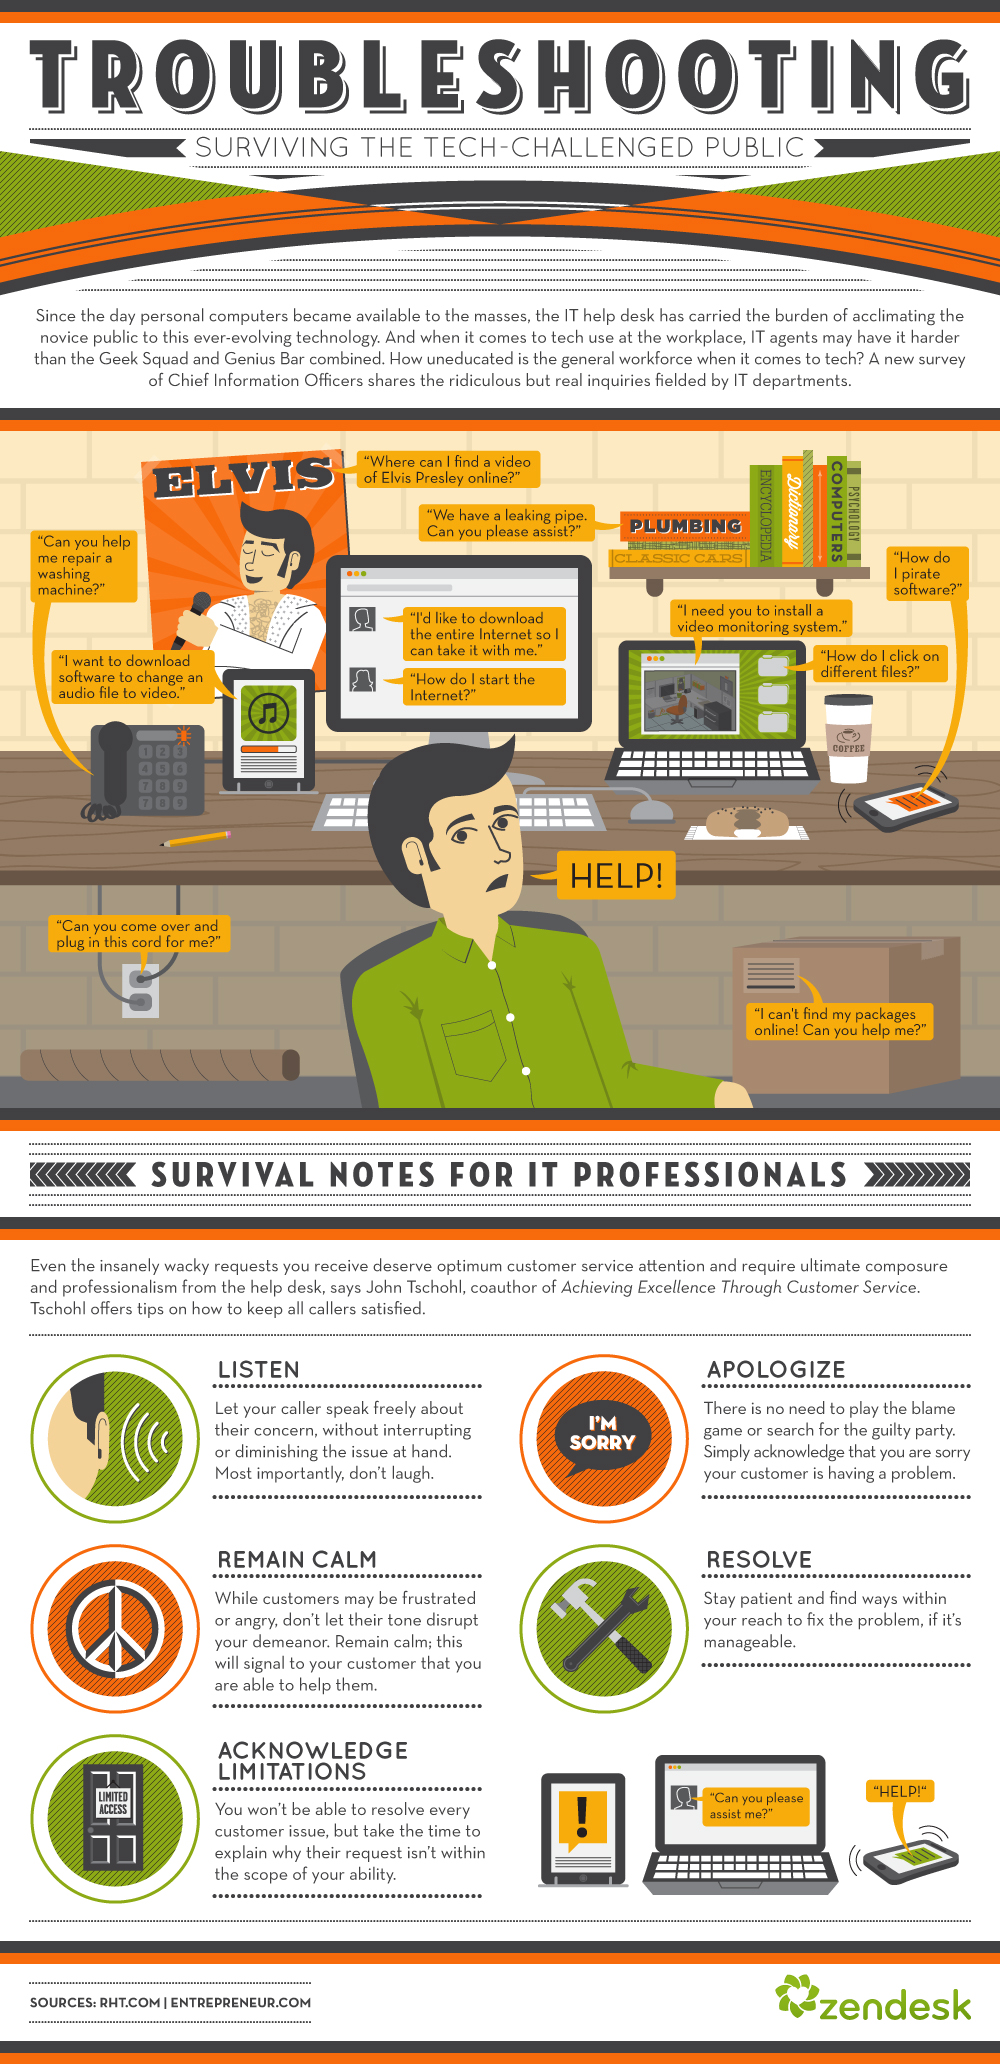 Surviving the tech-challenged public infographic